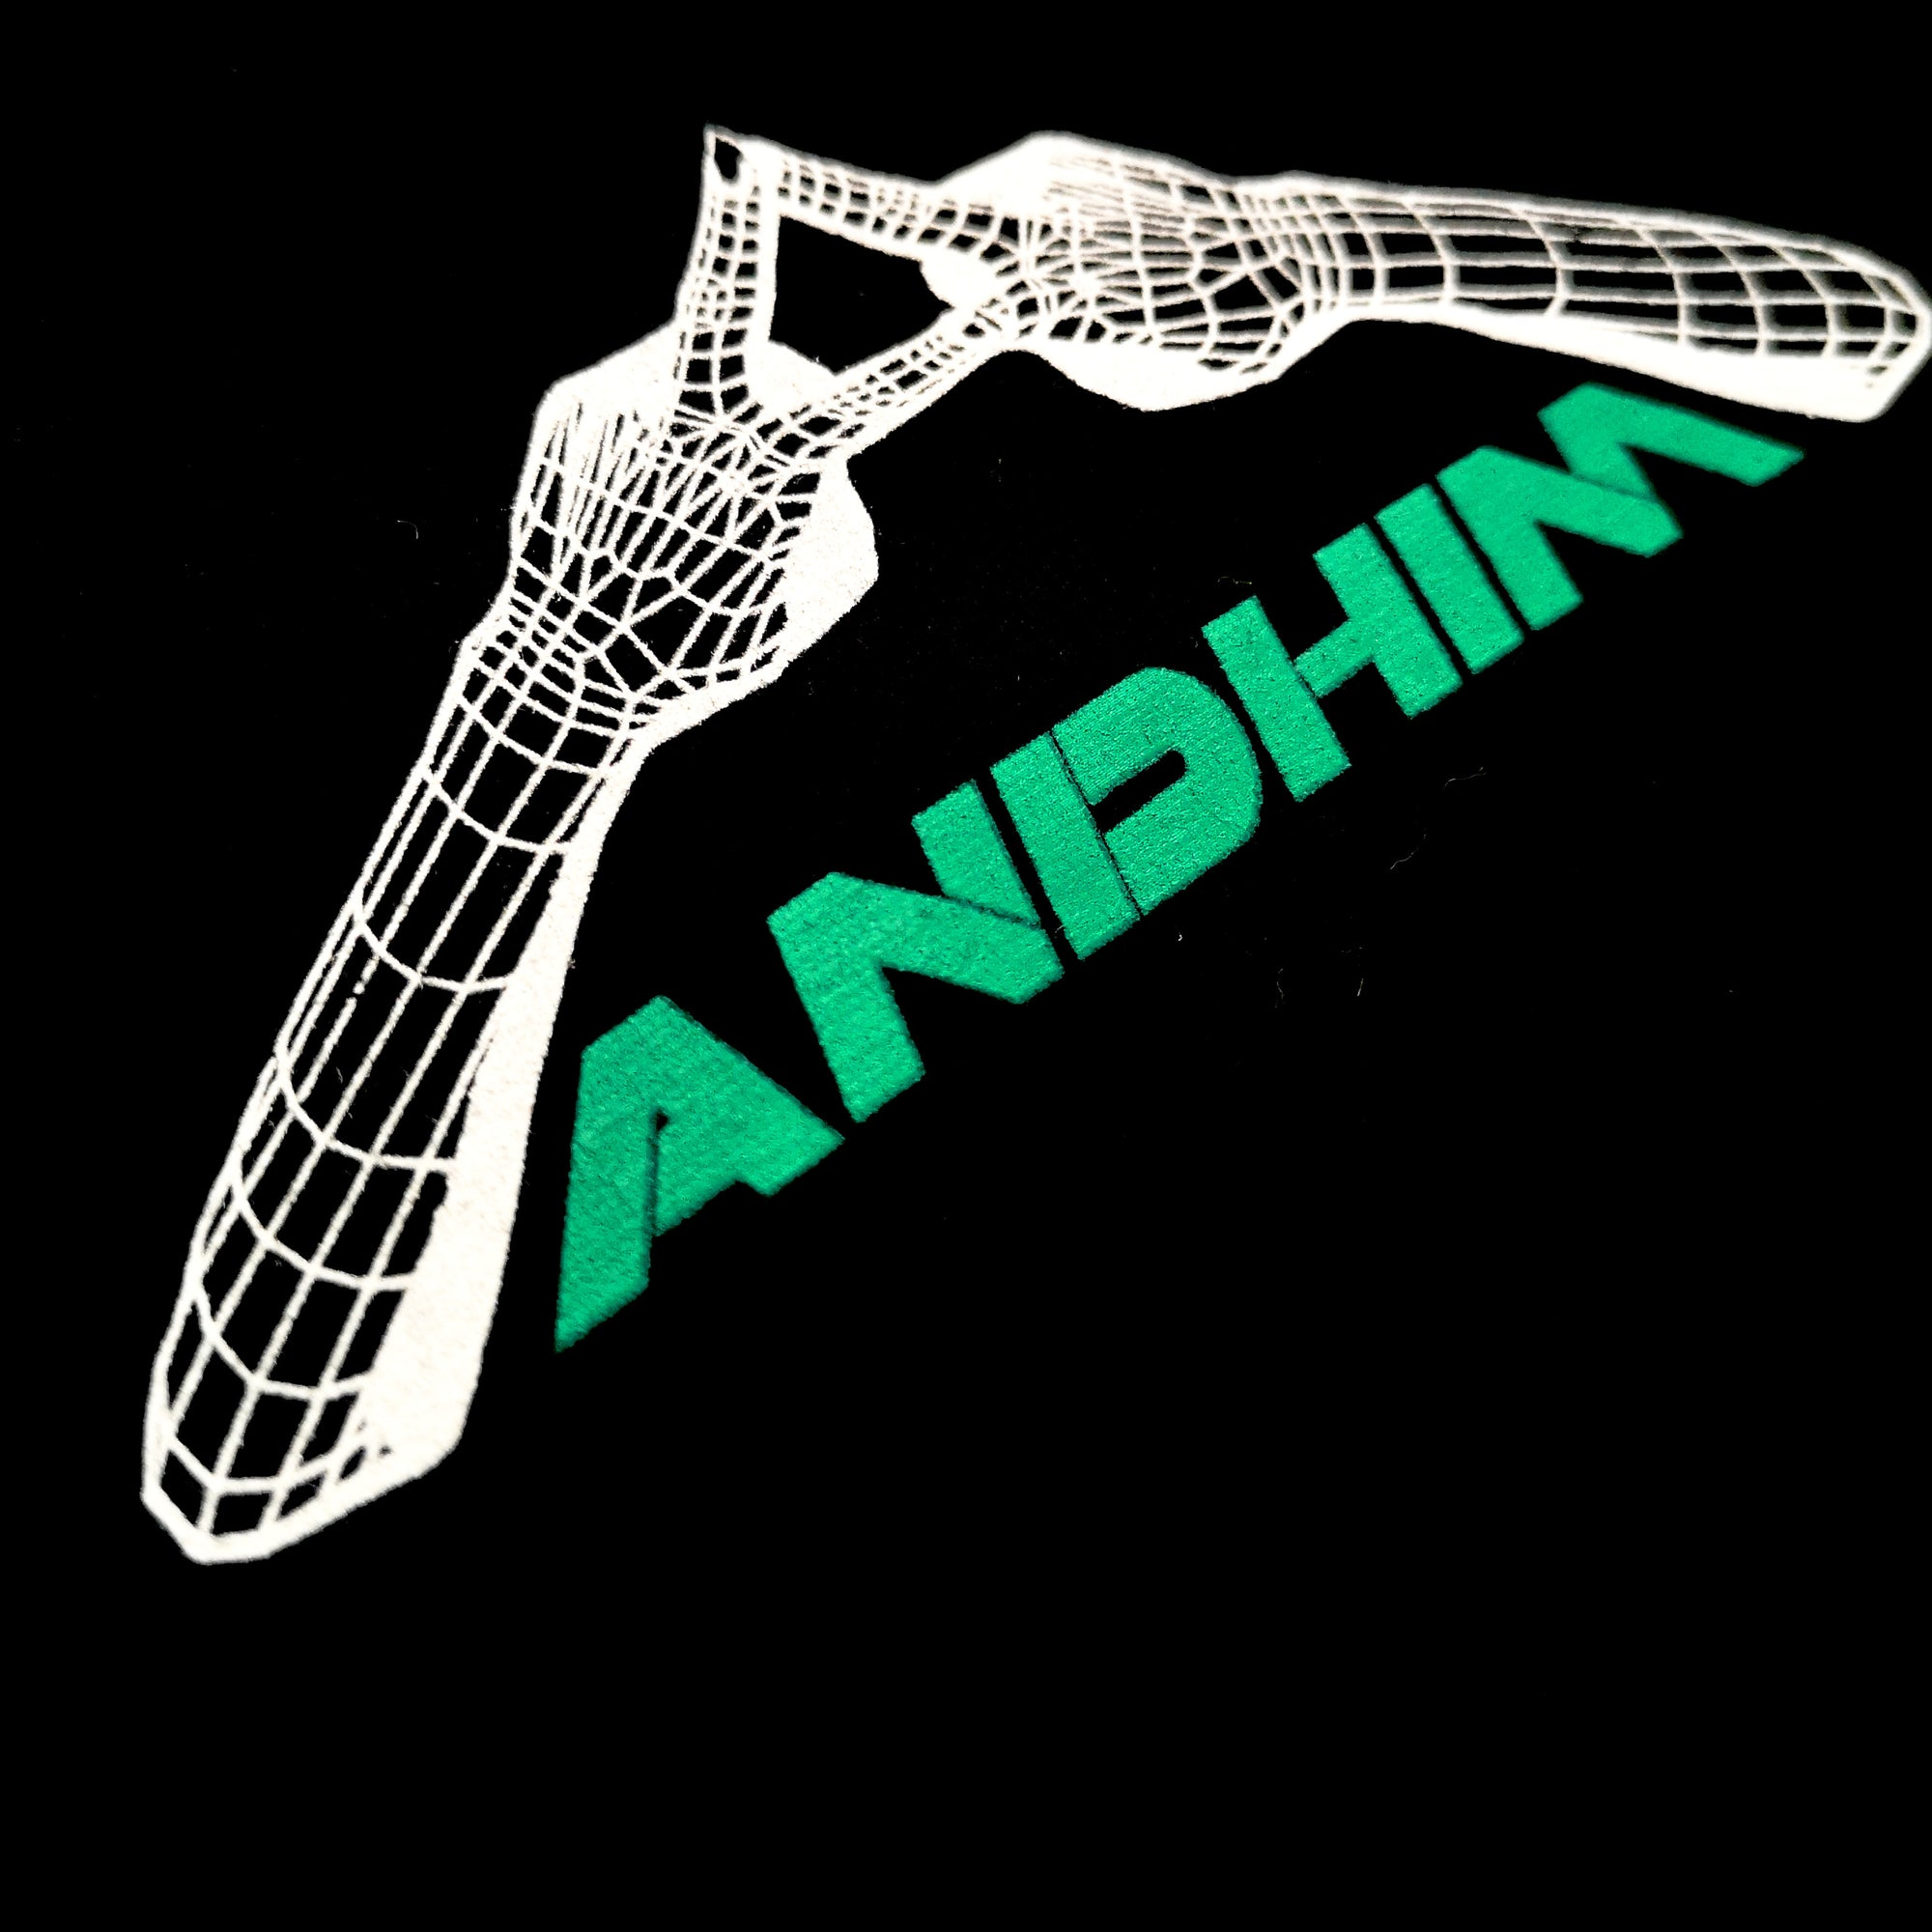 ANDHIM COLLAB T-SHIRT VINYL IS FLAT - BLACK